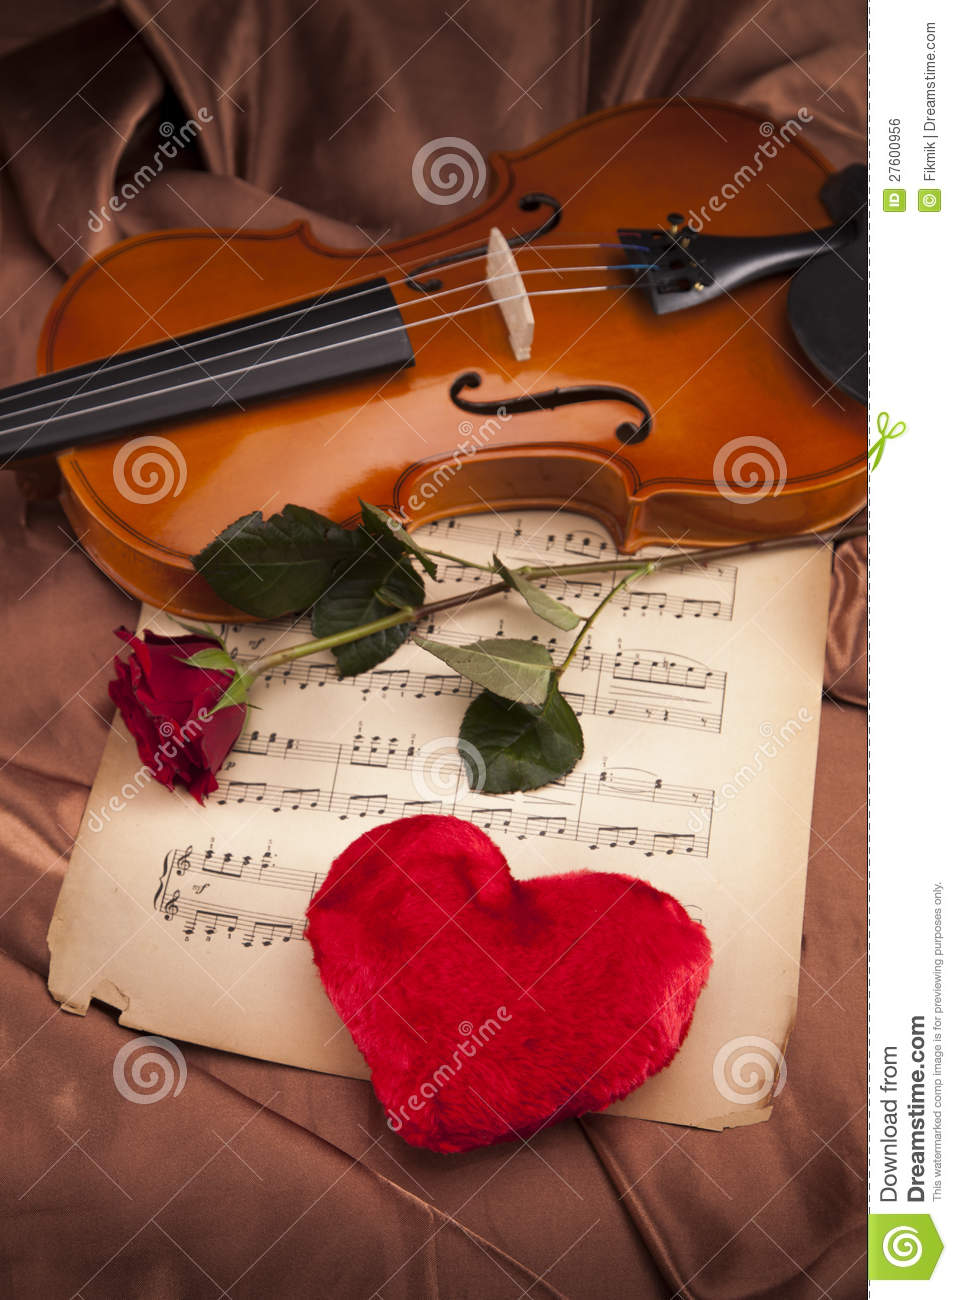 beautiful rose  heart and violin  royalty free stock image